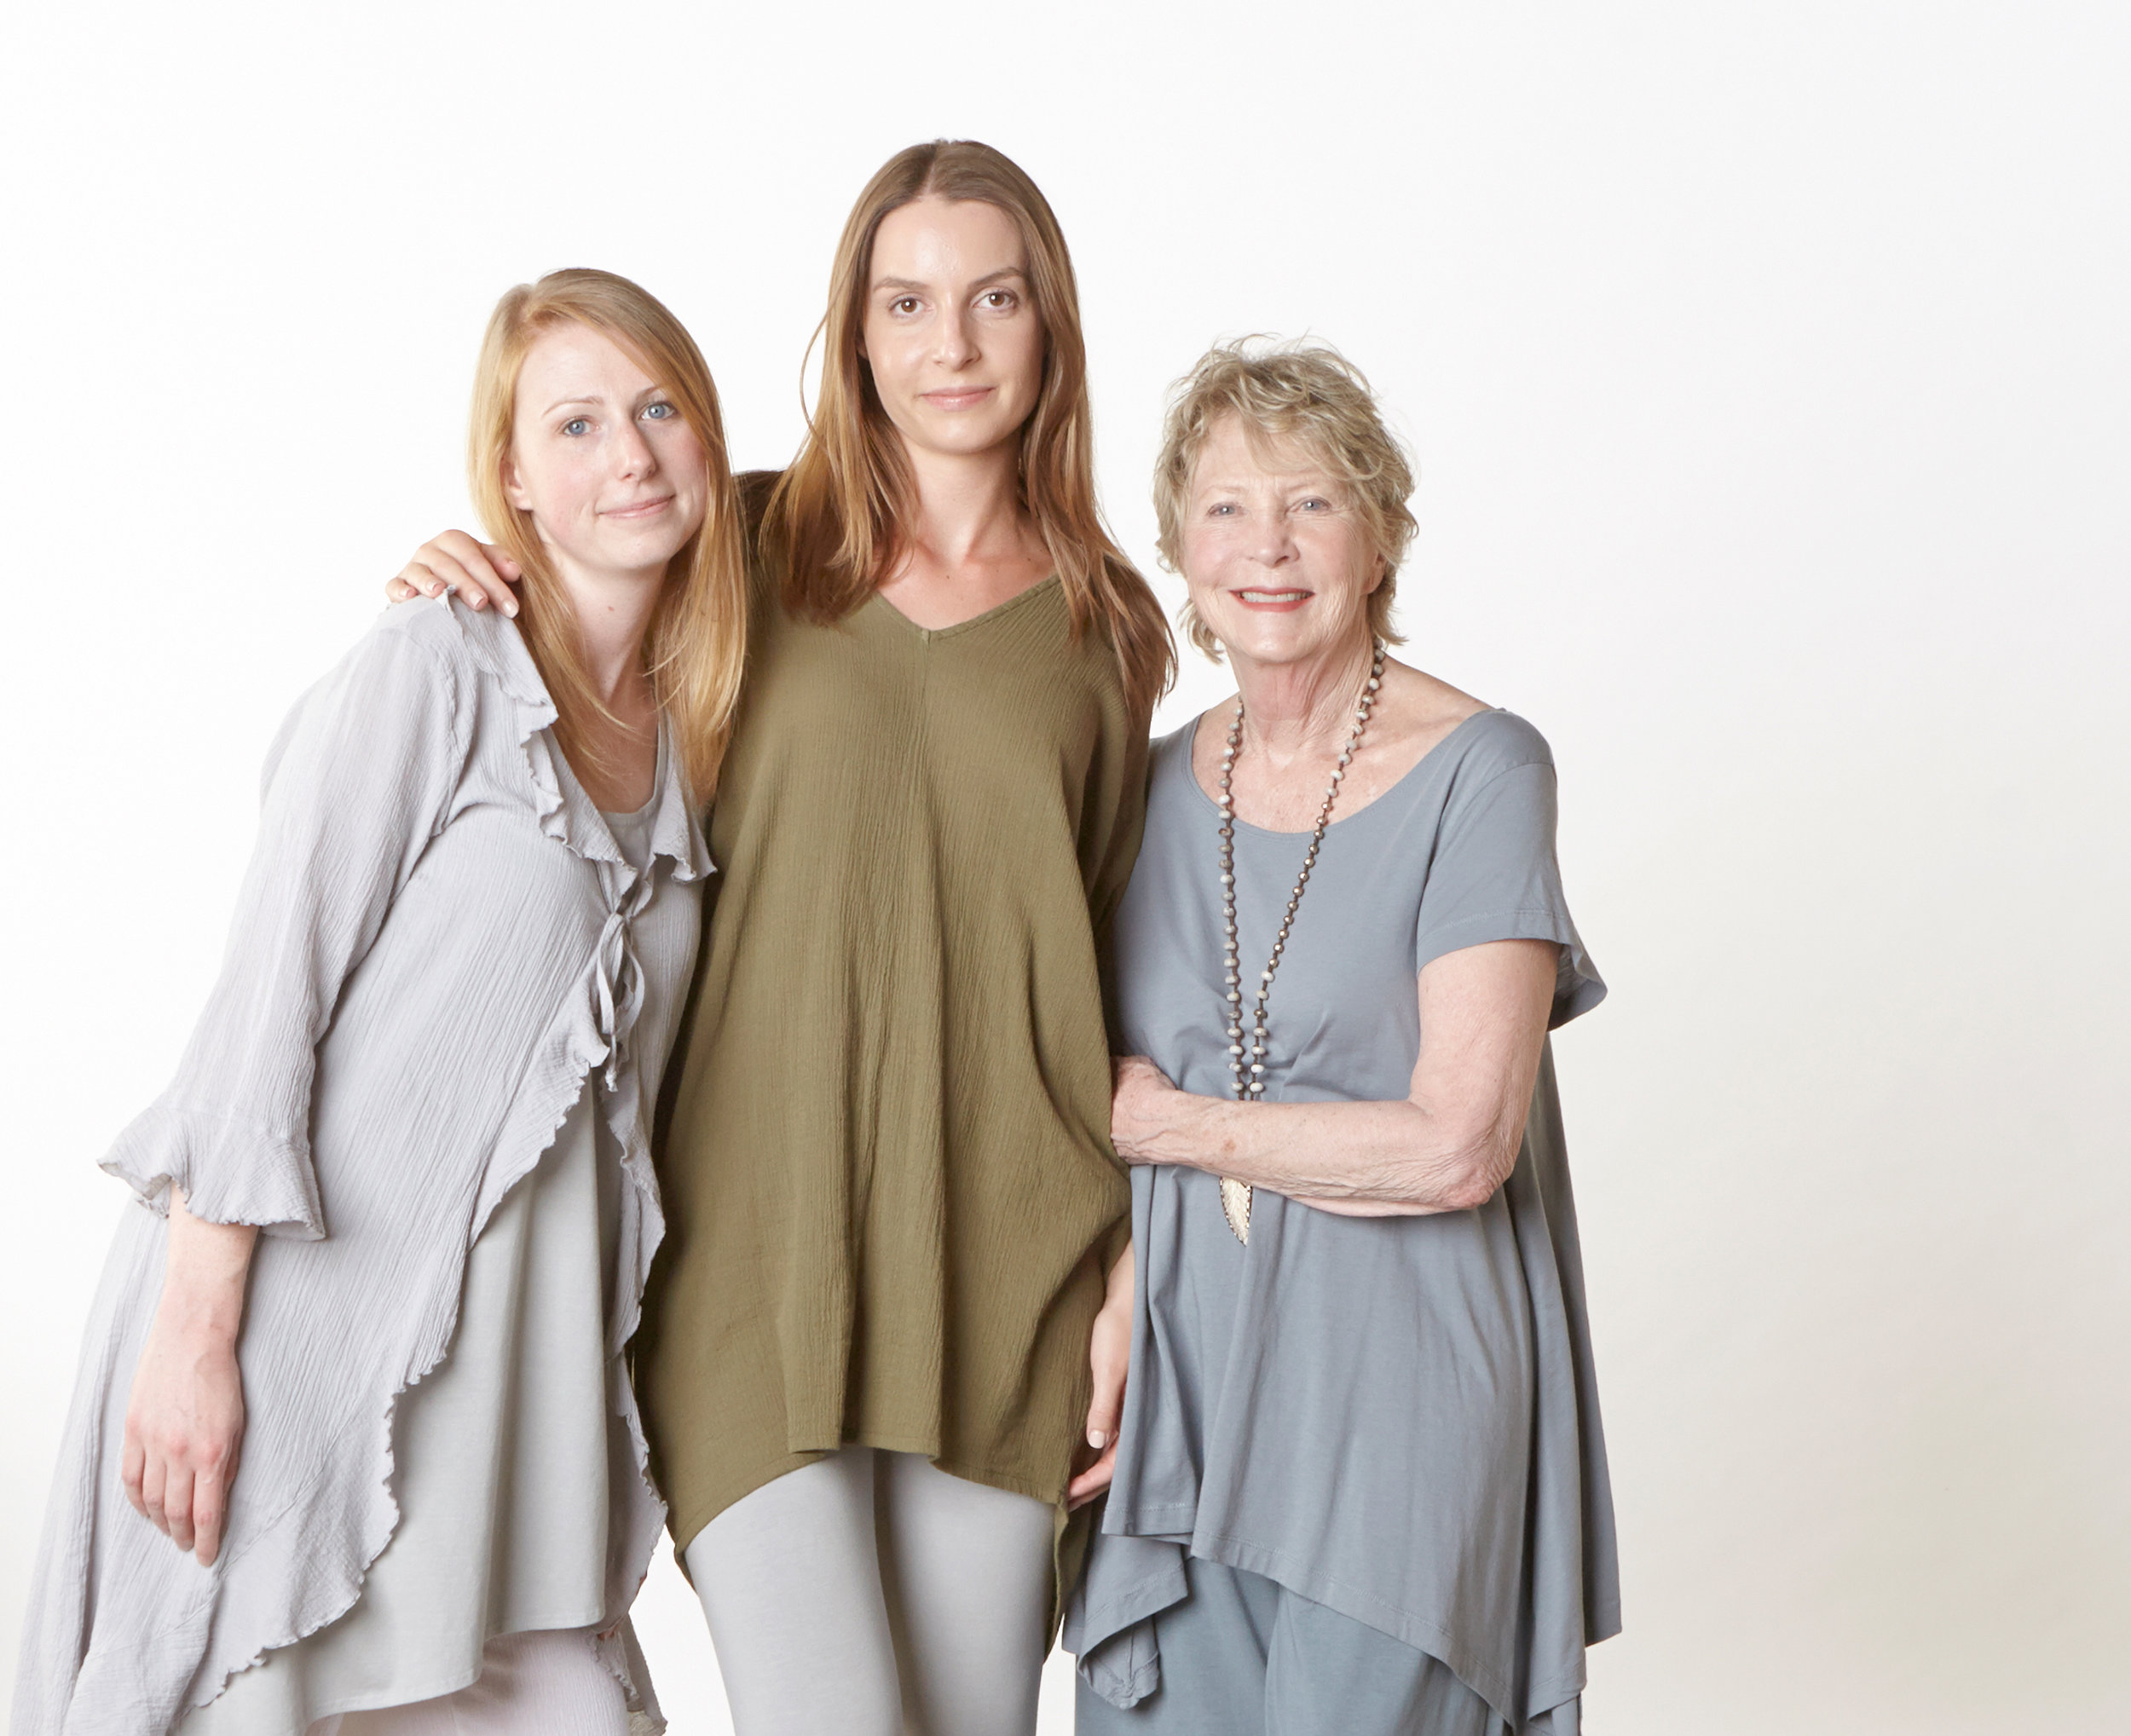 Camille Cardigan in Pier, Raquel Tunic in Grove Cotton Gauze, Charlie Shirt in Loon Pima Cotton